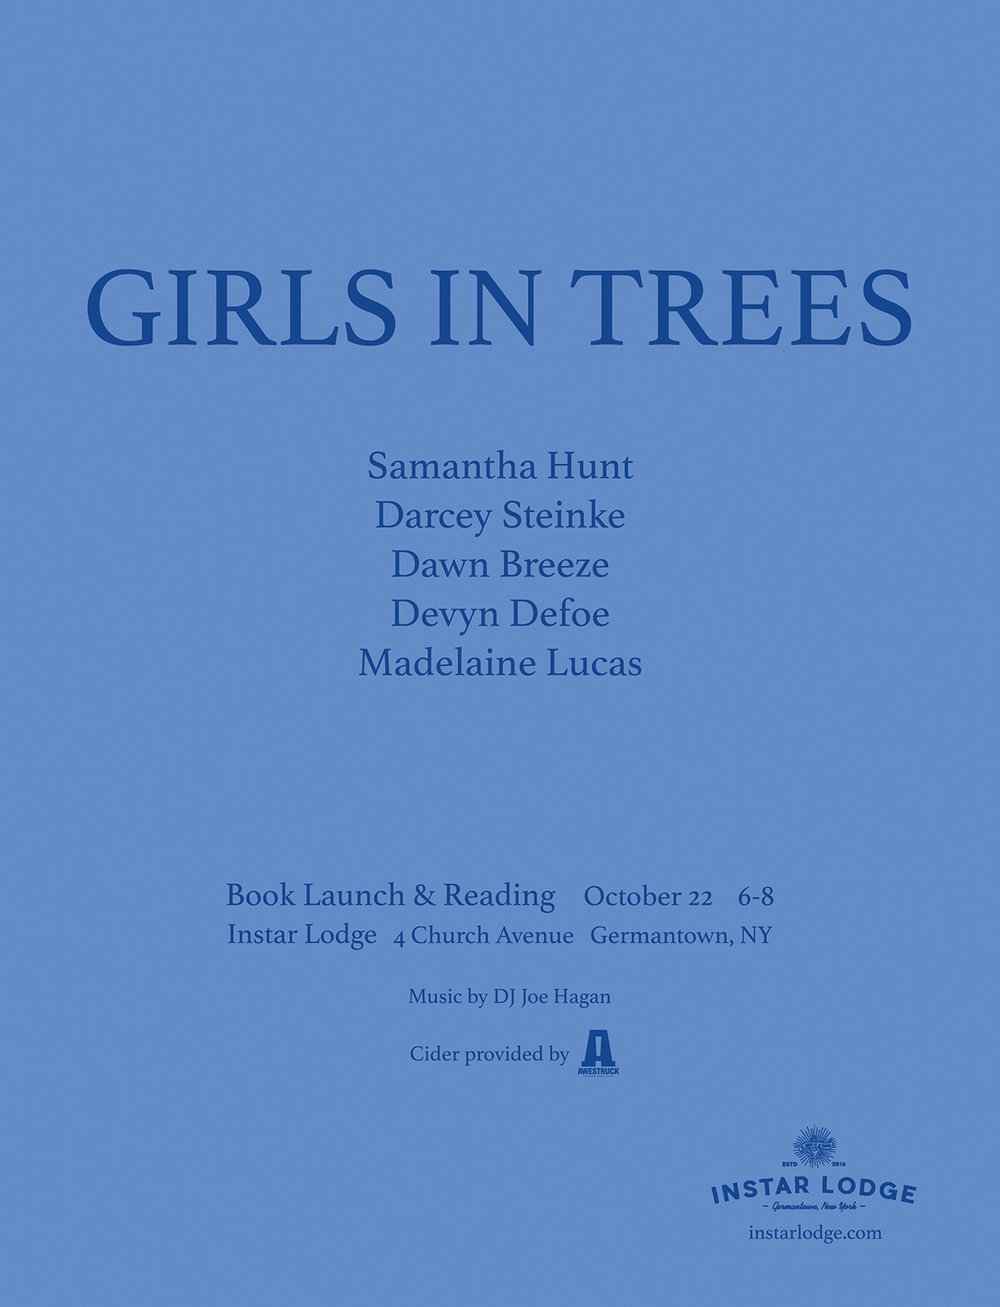 Join me at Instar Lodge.  I will be reading a new short story titled, Giving Tree.  The event is going to be a wonderful party in celebration of launching this beautiful limited edition artist book edited by Rebecca Godfrey and featuring works from over 33 artists.